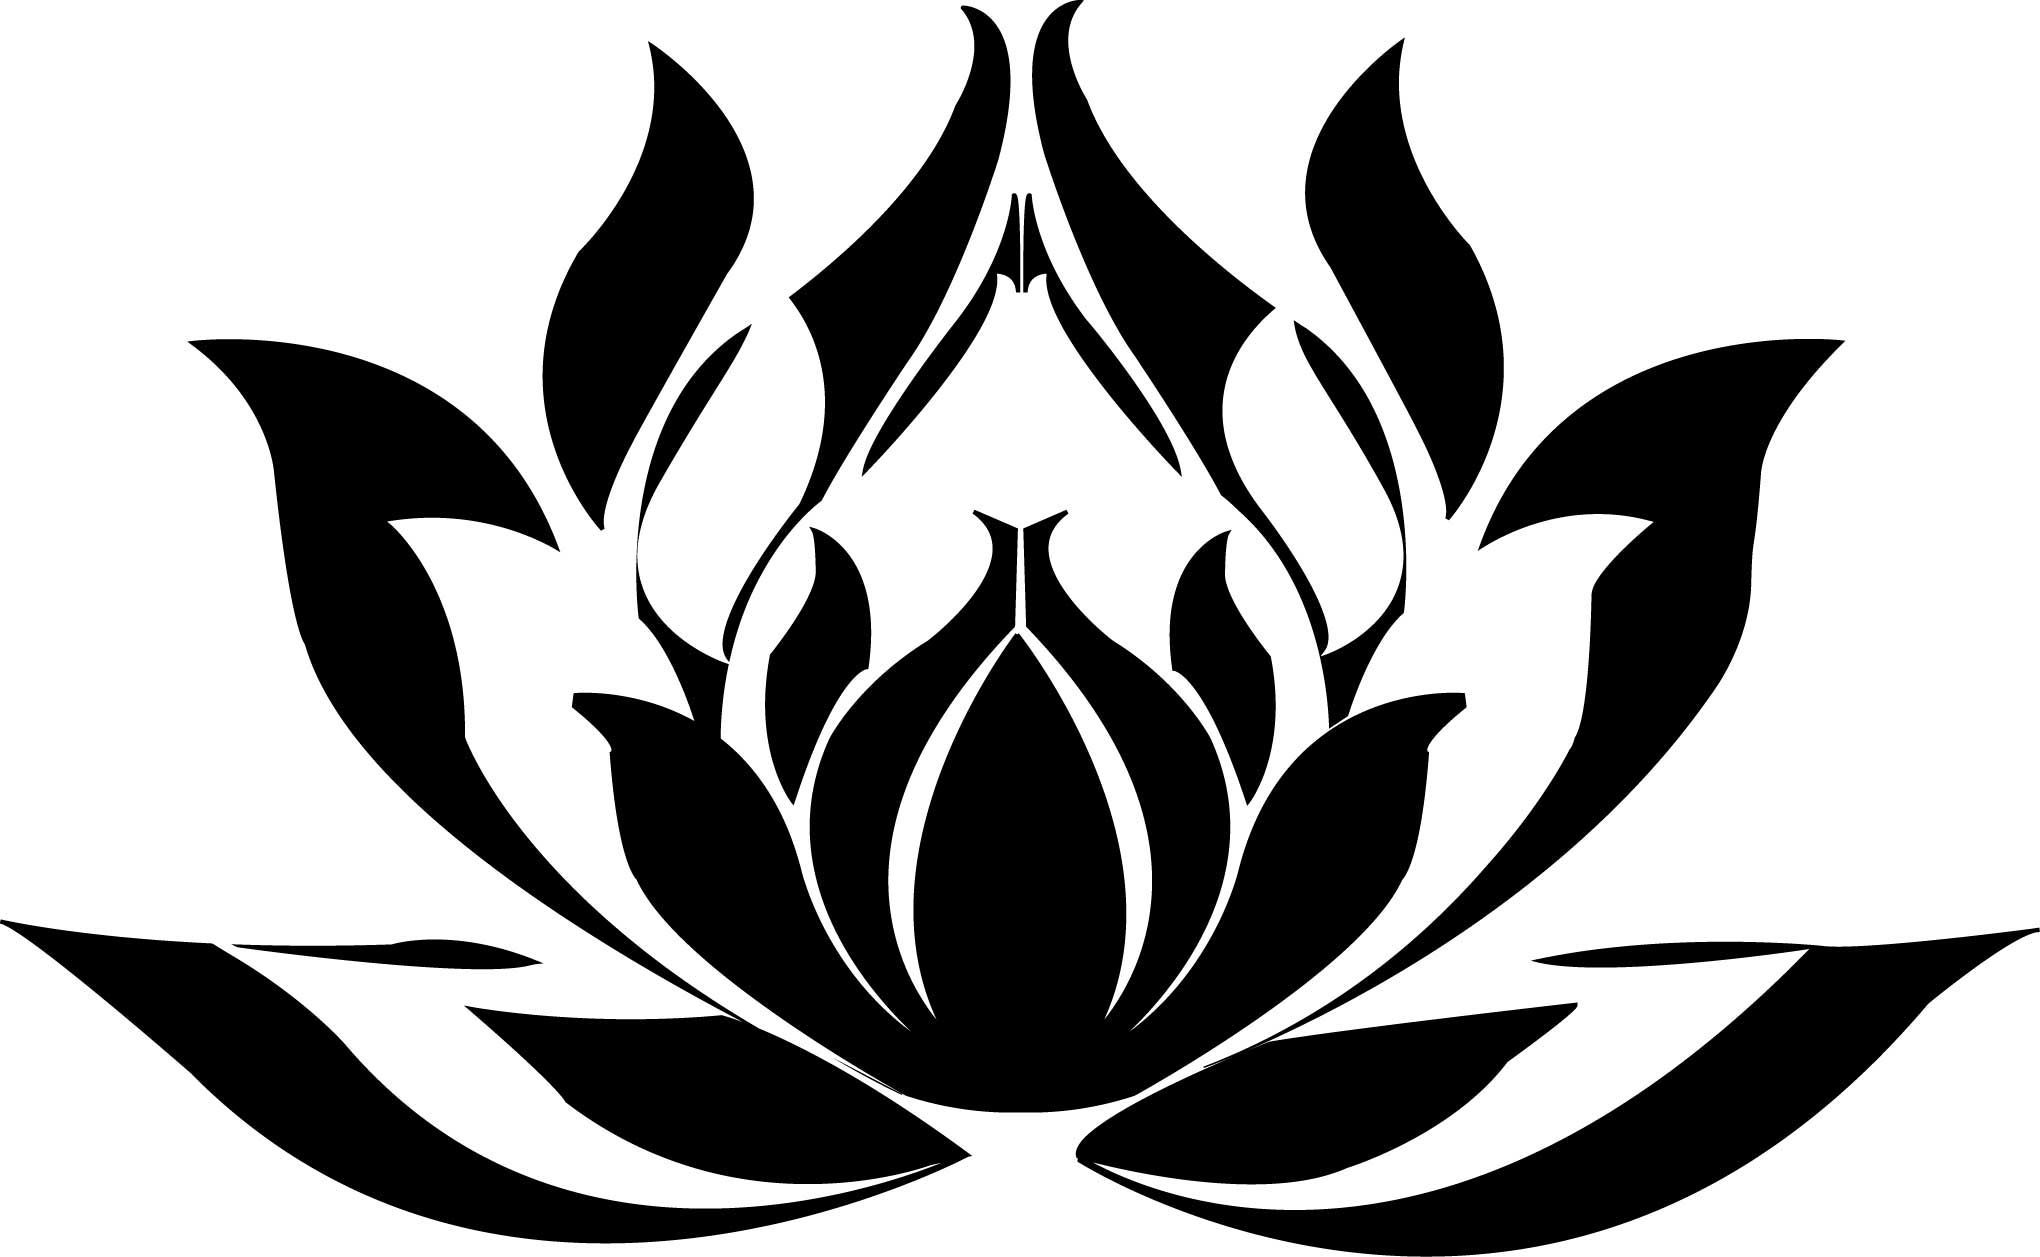 Black And White Lotus Flower Drawings Myflowerreviews My